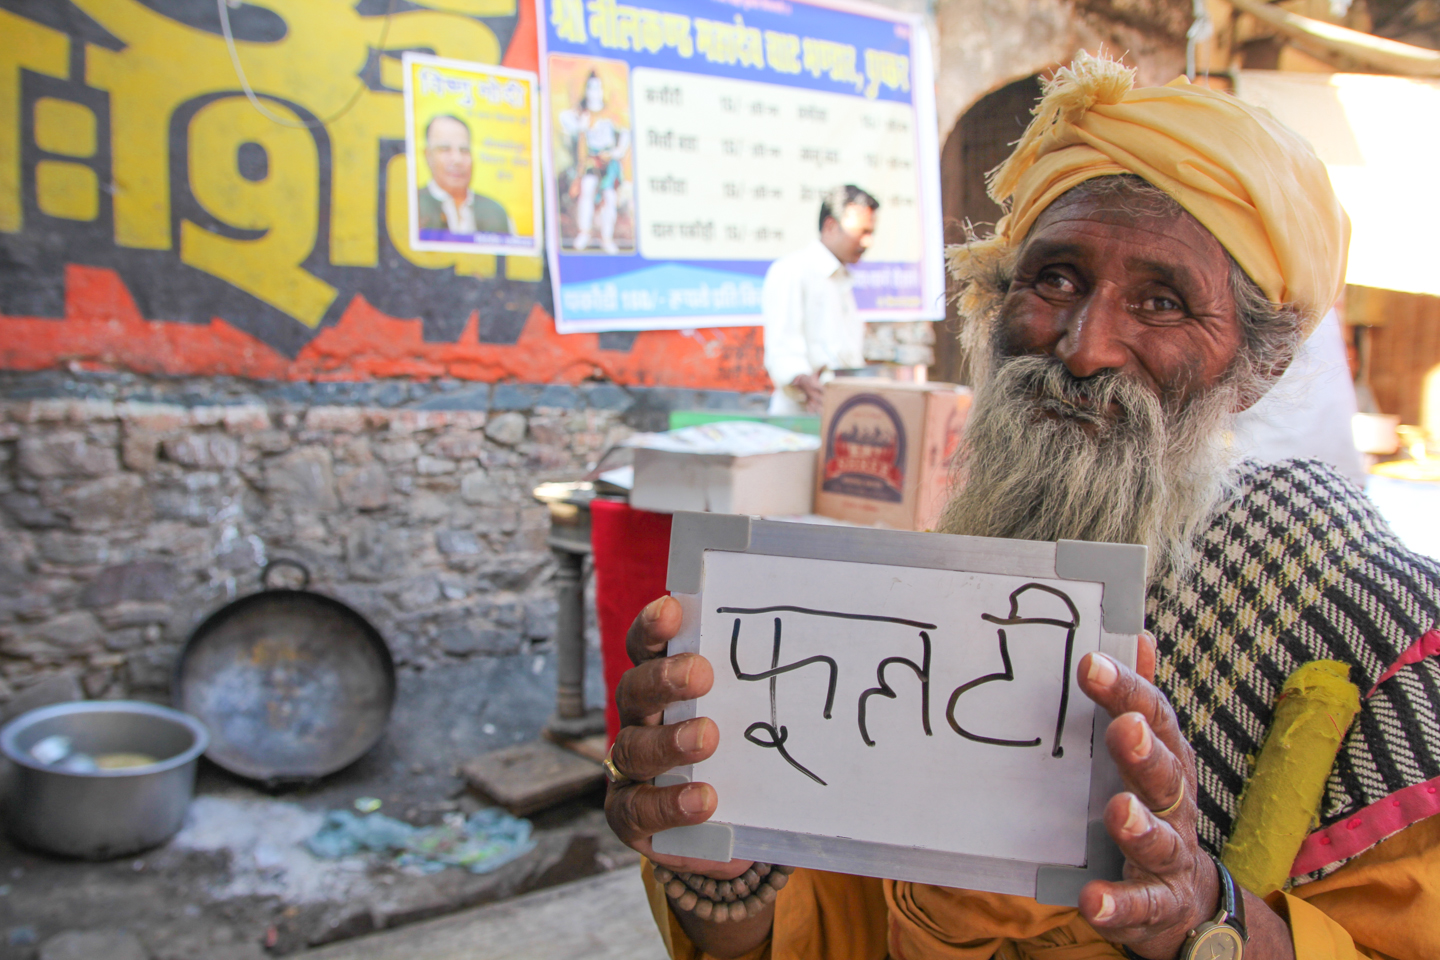 Majjen Mohan, a baba from Kullu Manali in Himachal Pradesh, visits Pushkar annually for Kartik Purnima, a Hindu festival celebrating the lights of the gods. He especially likes chai that costs him nothing.